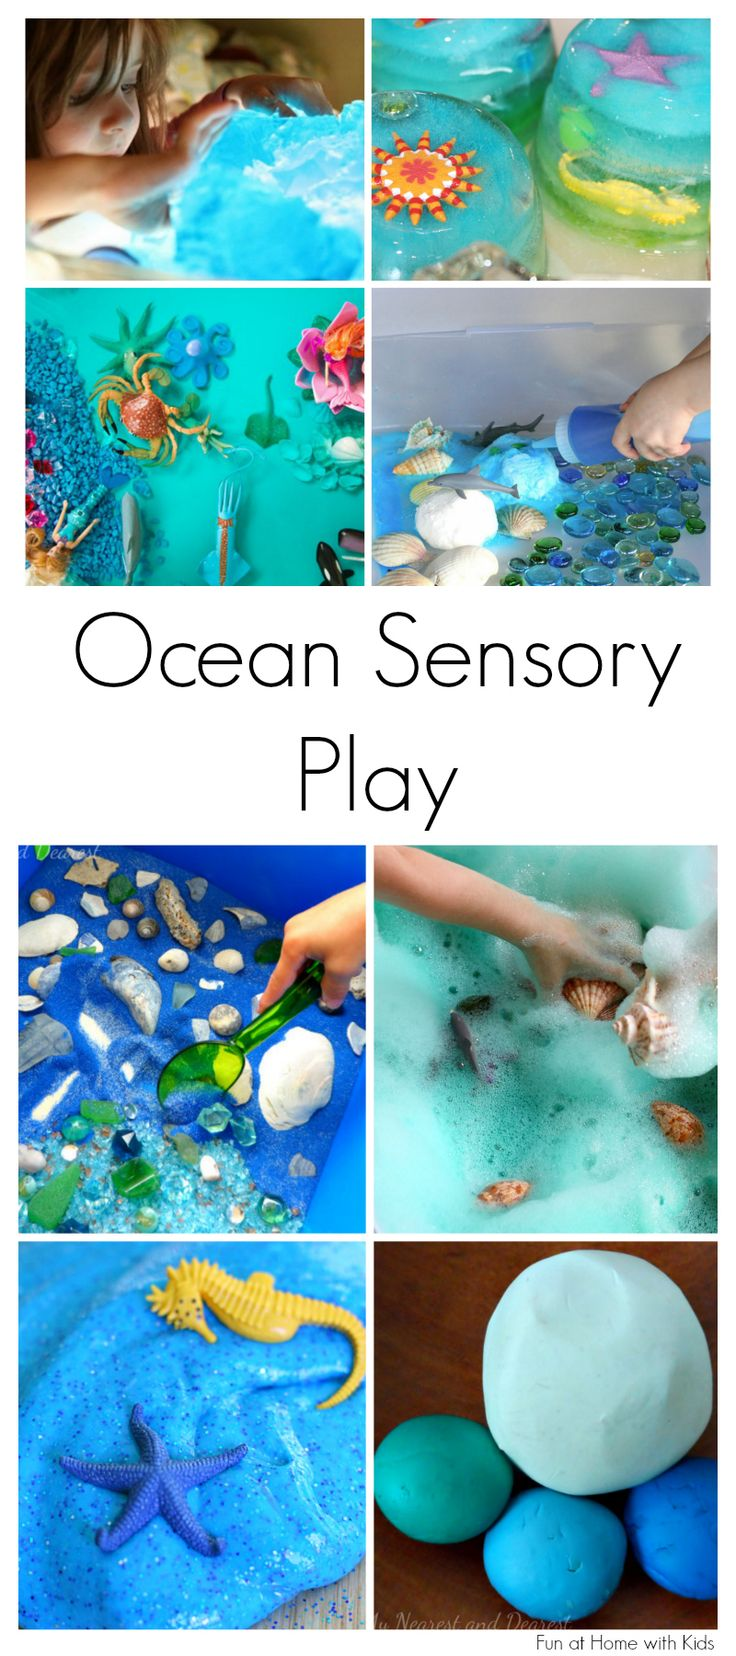 15 Ocean Sensory Play Ideas for Kids